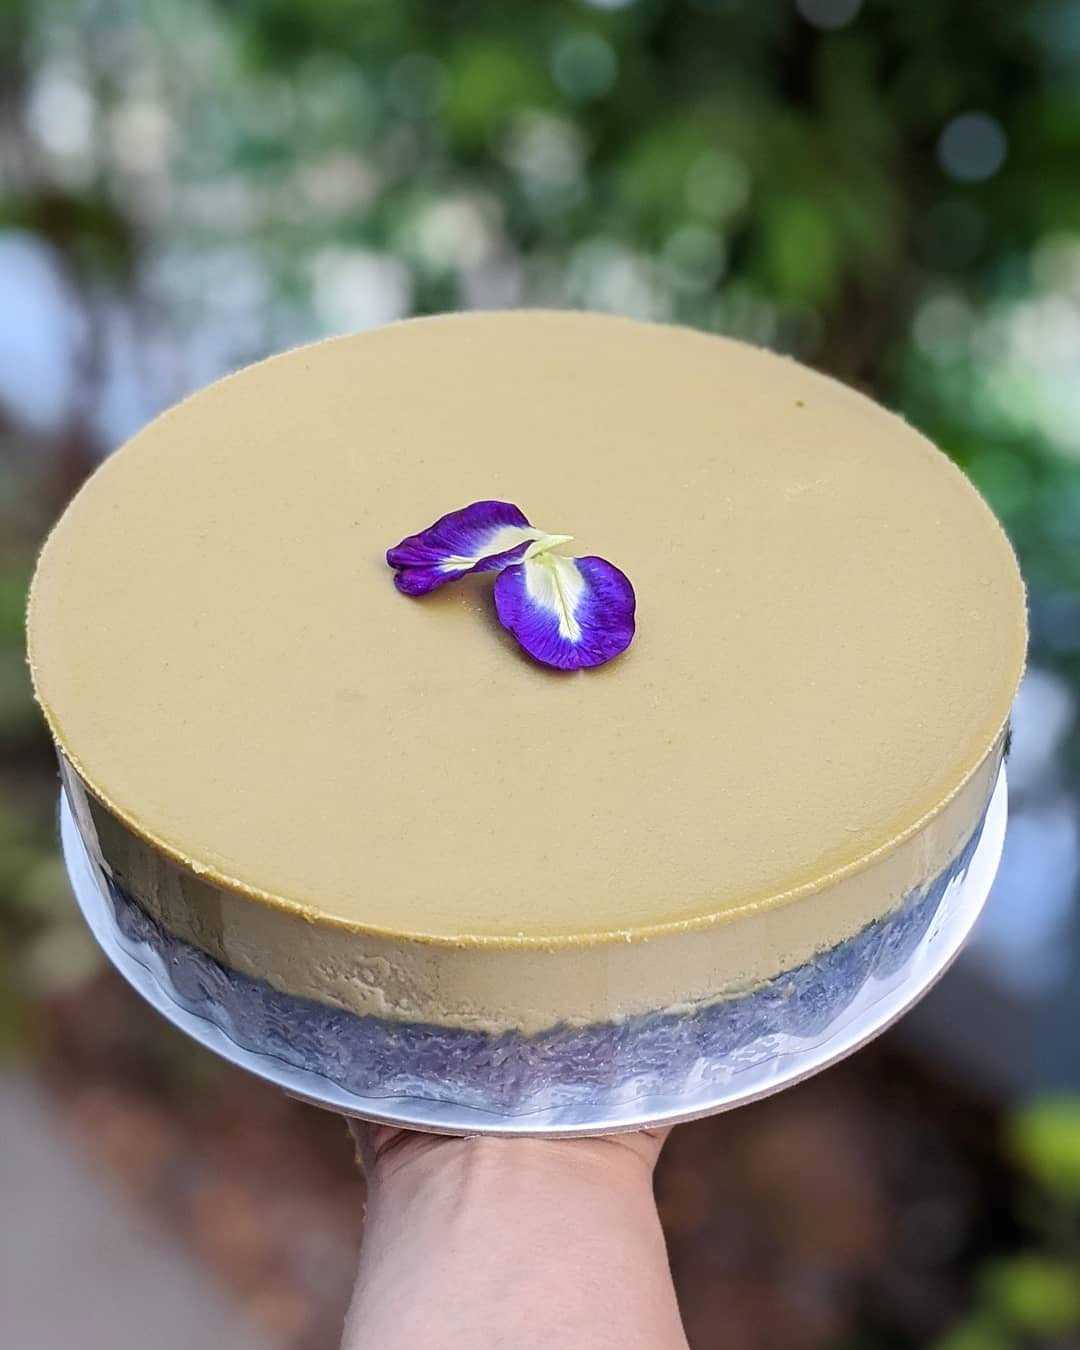 kueh delivery - bluepea